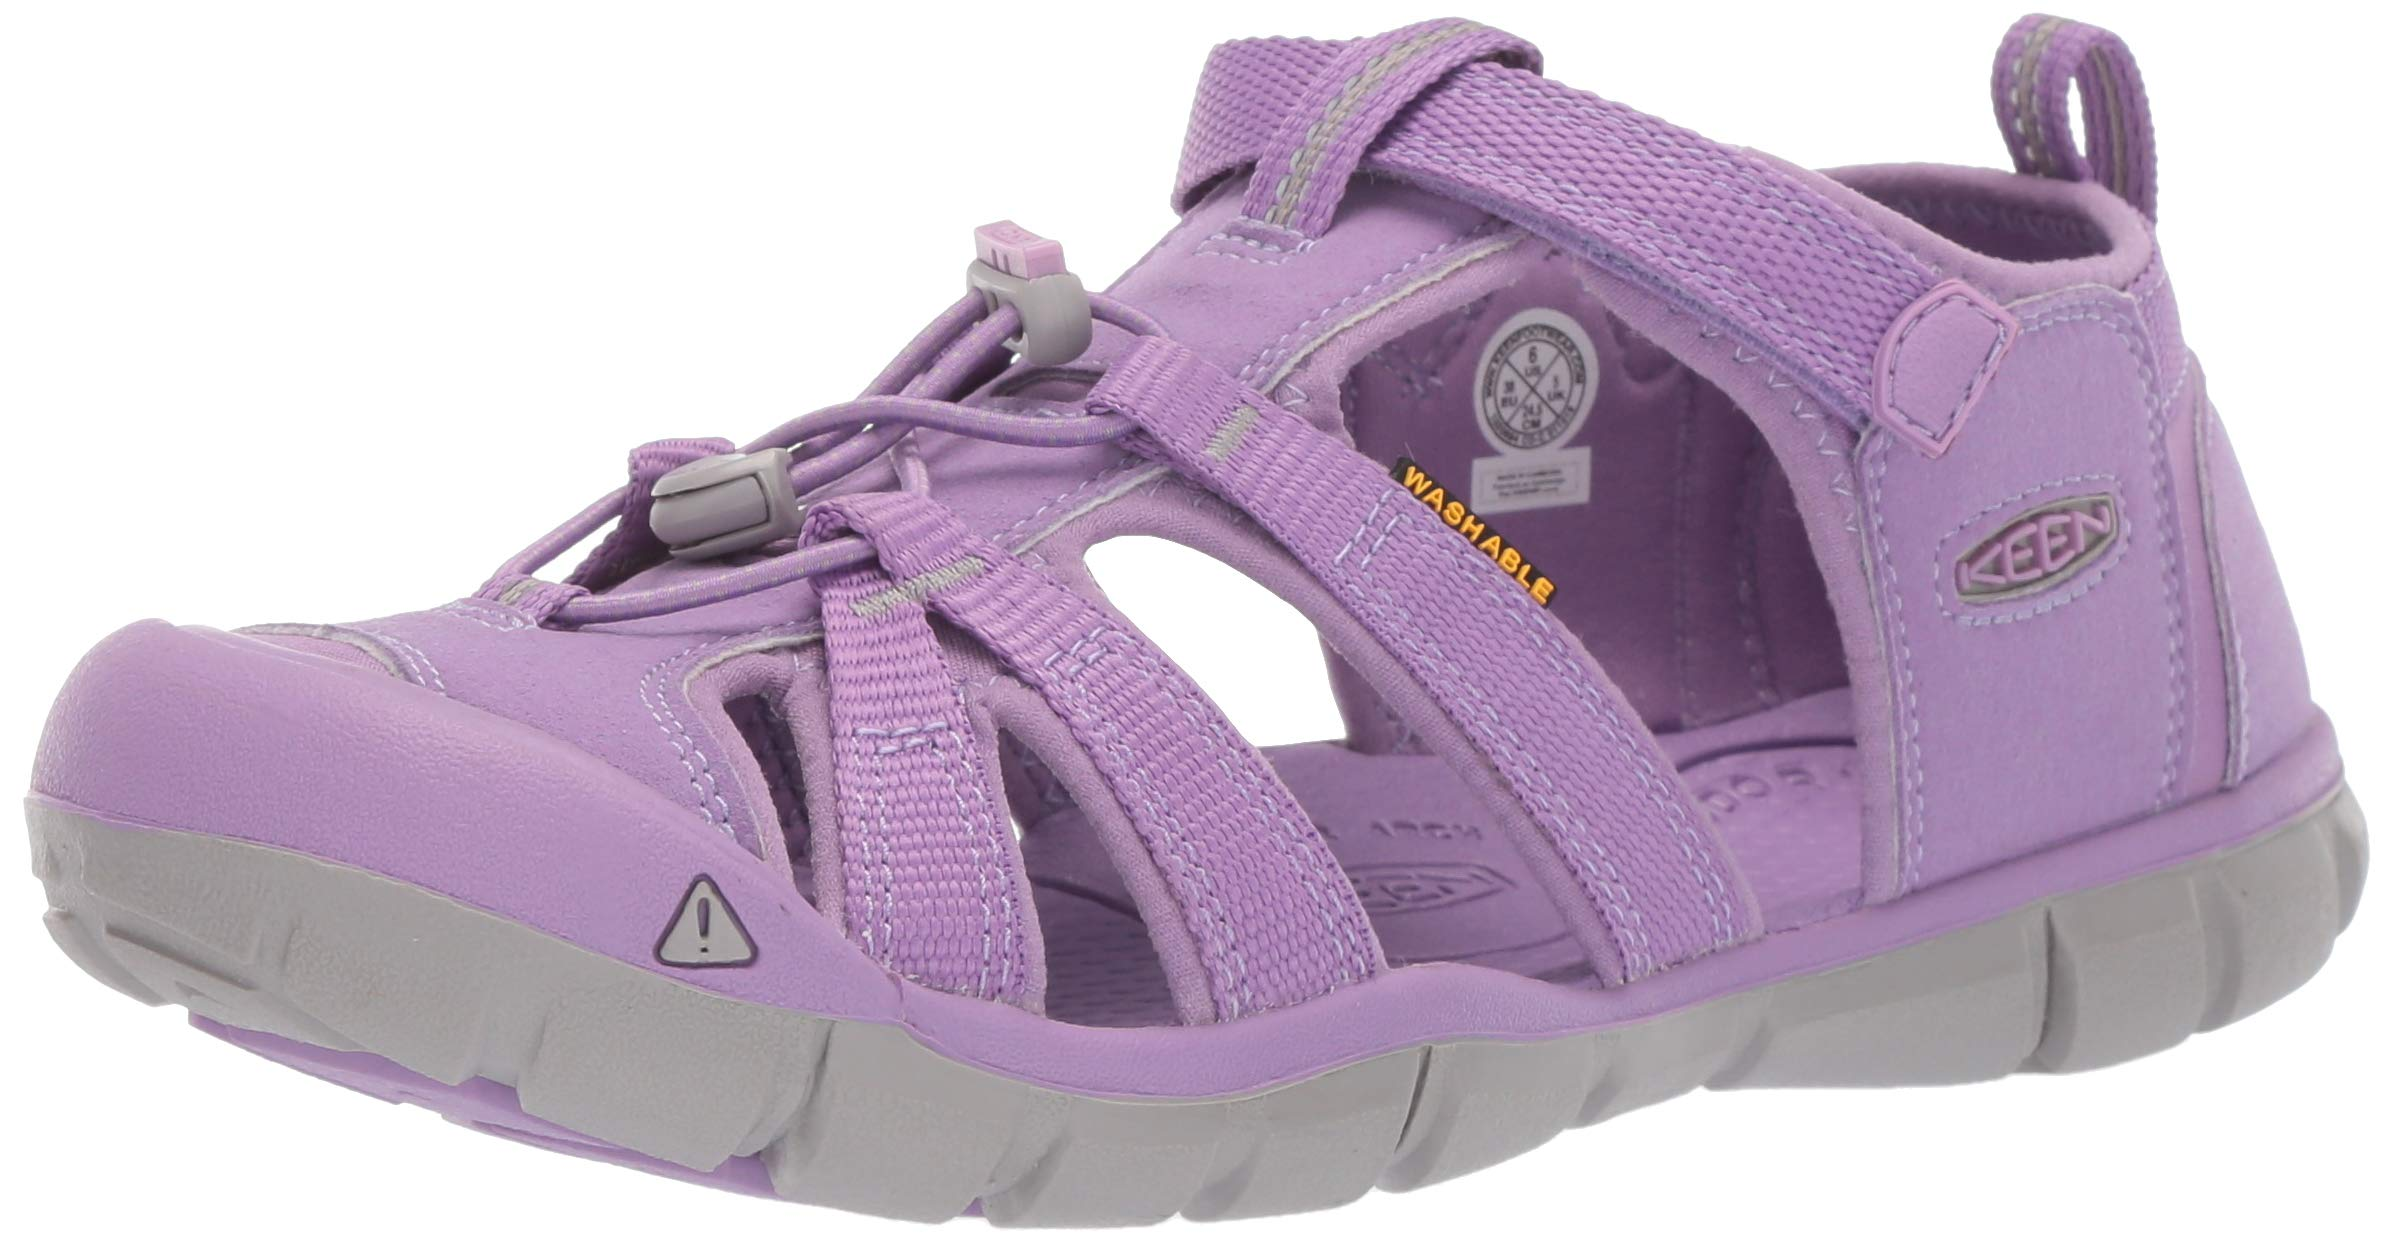 Keen Baby Seacamp II CNX Water Shoe diffused Orchid 4 M US Toddler